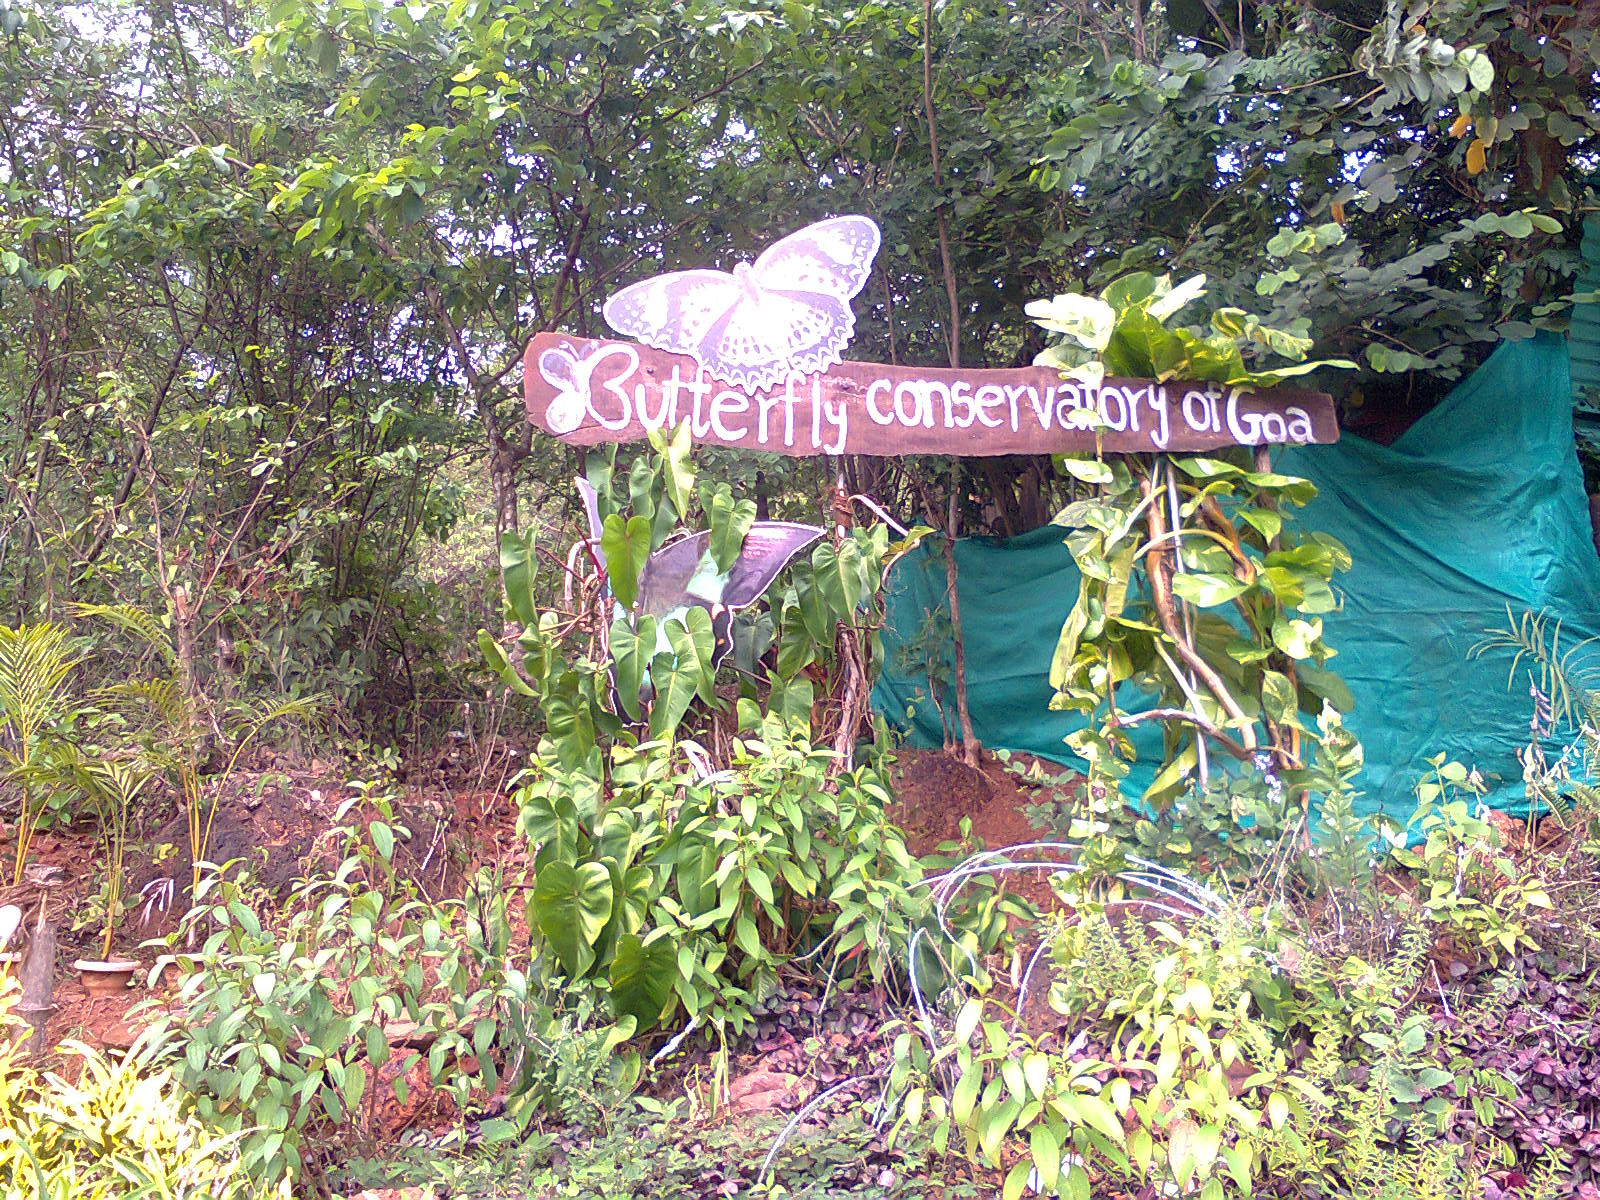 Visit the Butterfly Conservatory - Don't Leave Goa Without Experiencing this Alternative Things